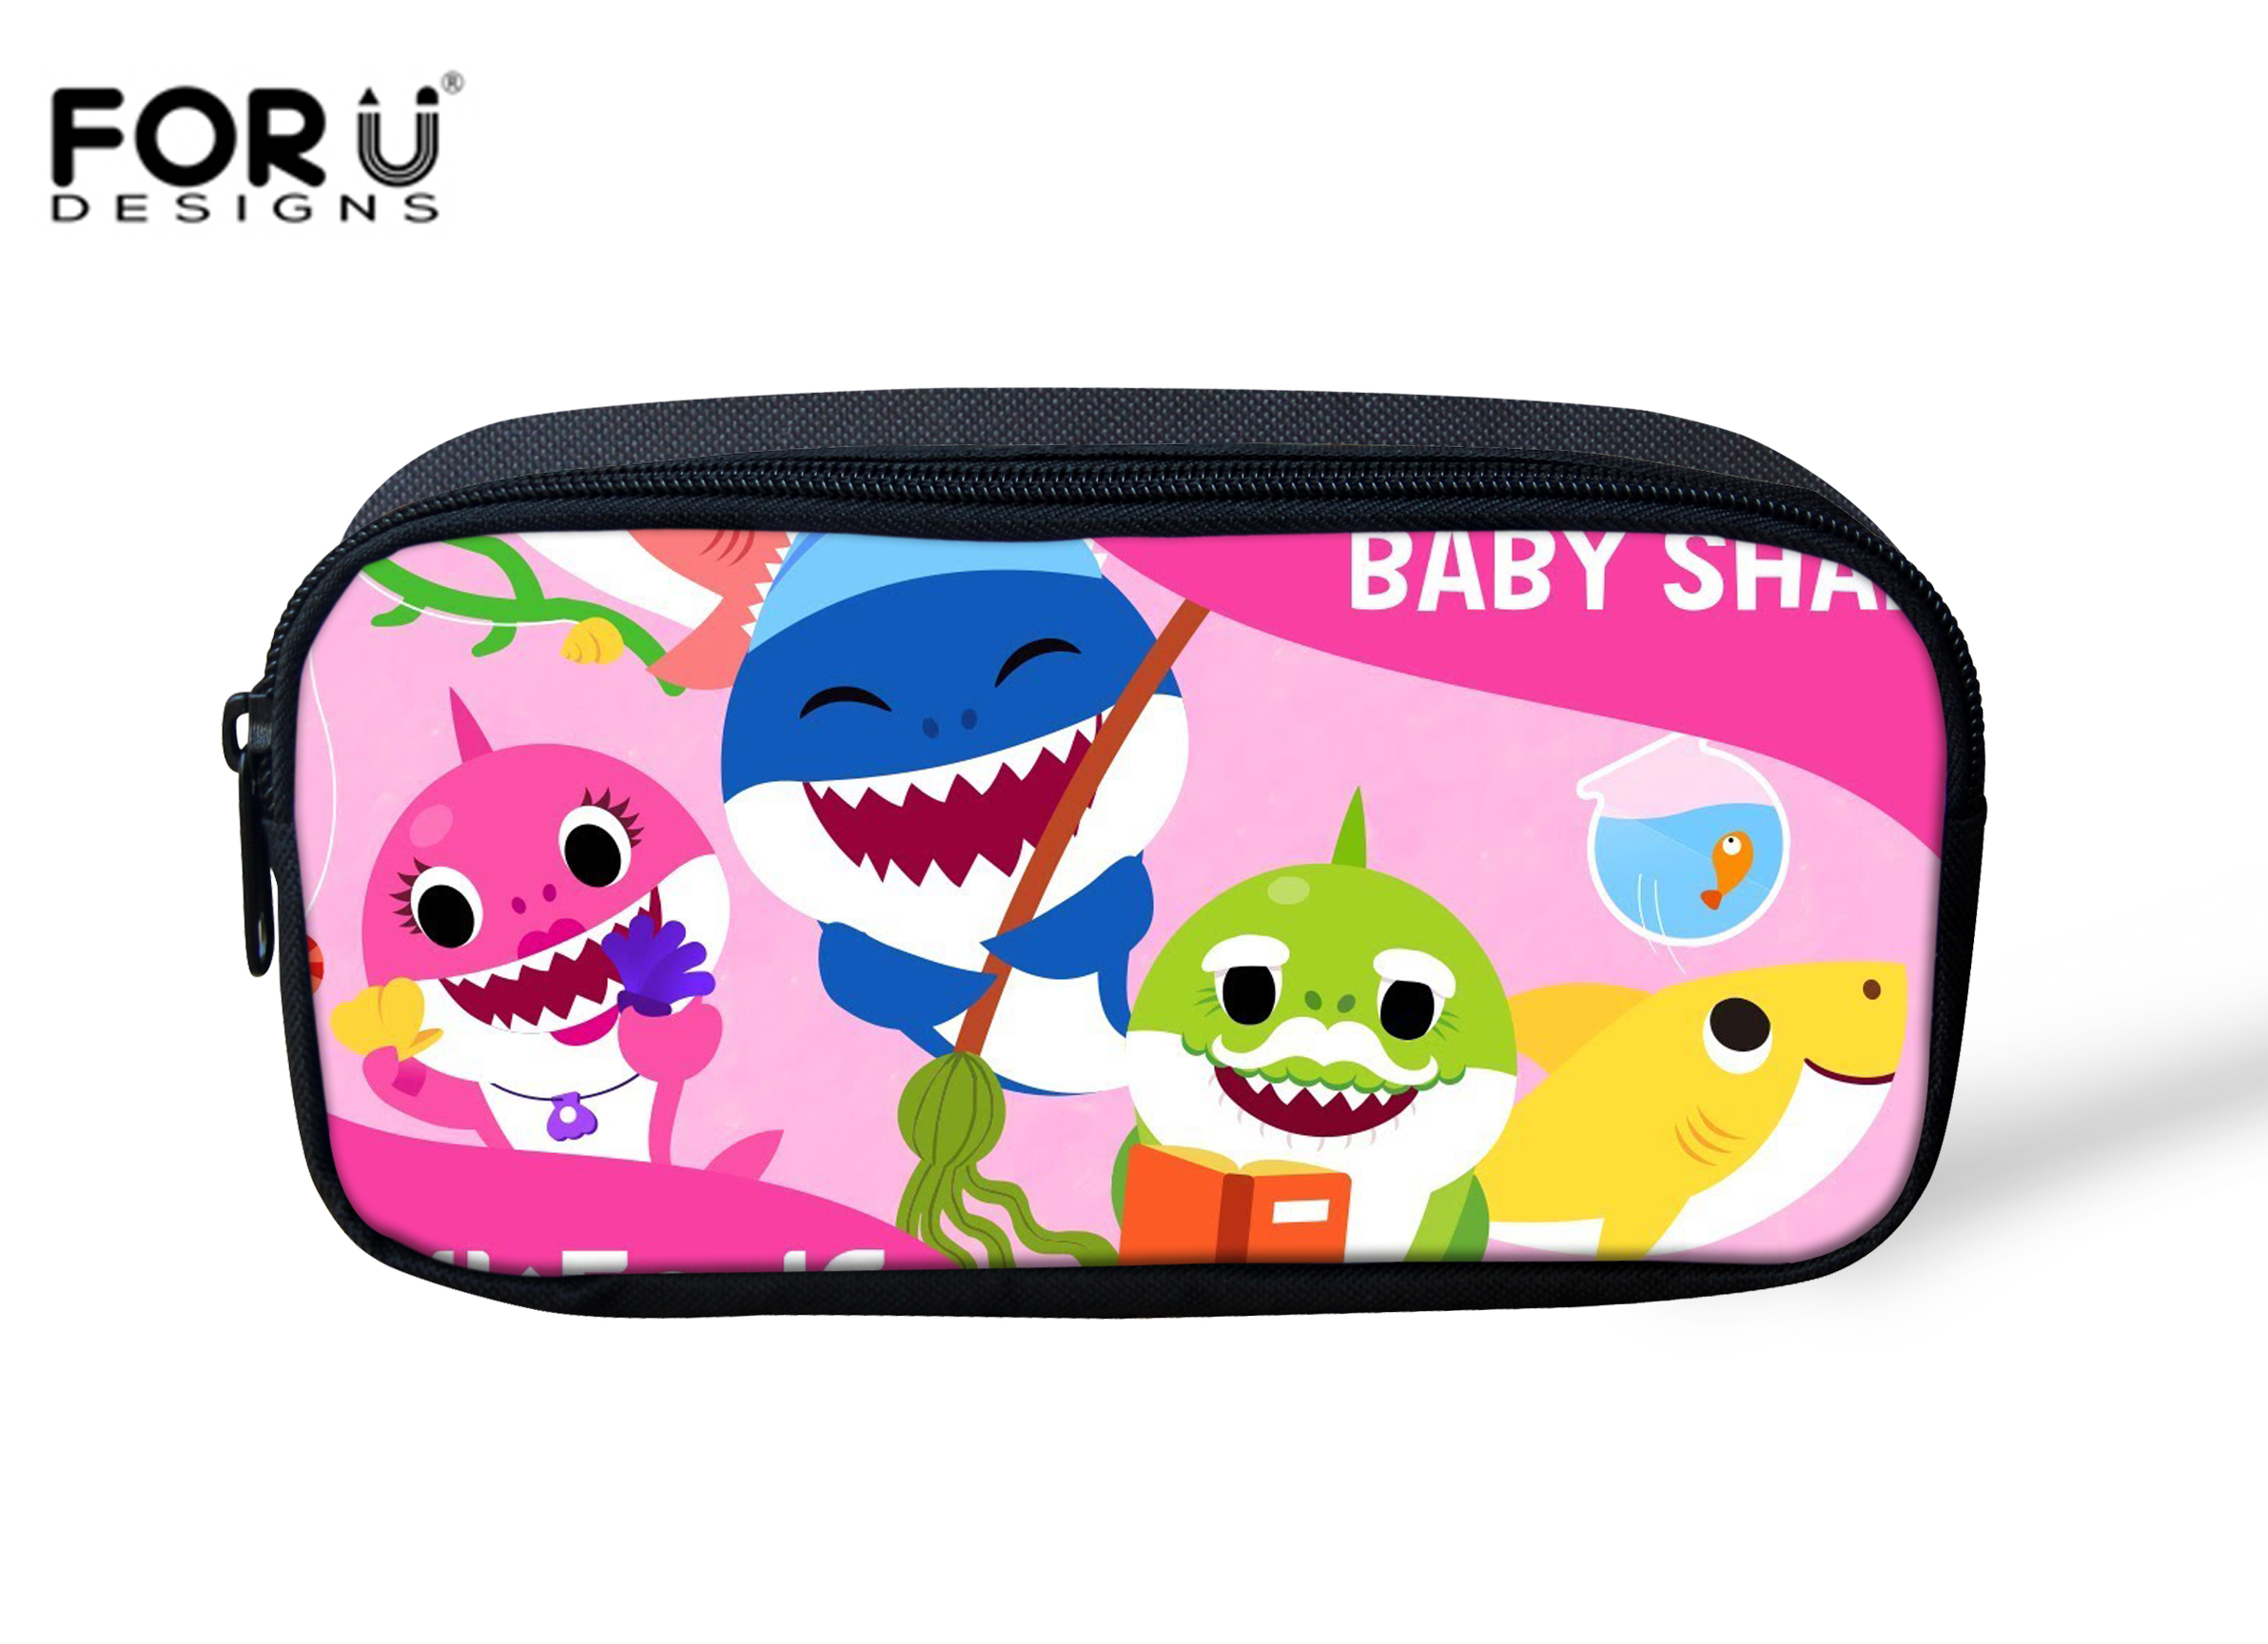 FORUDESIGNS Female Makeup Bags 3D PinkFong Shark Print Women Travel Toiletry Pencil Makeup Case Storage Pouch Cosmetic Bag Purse